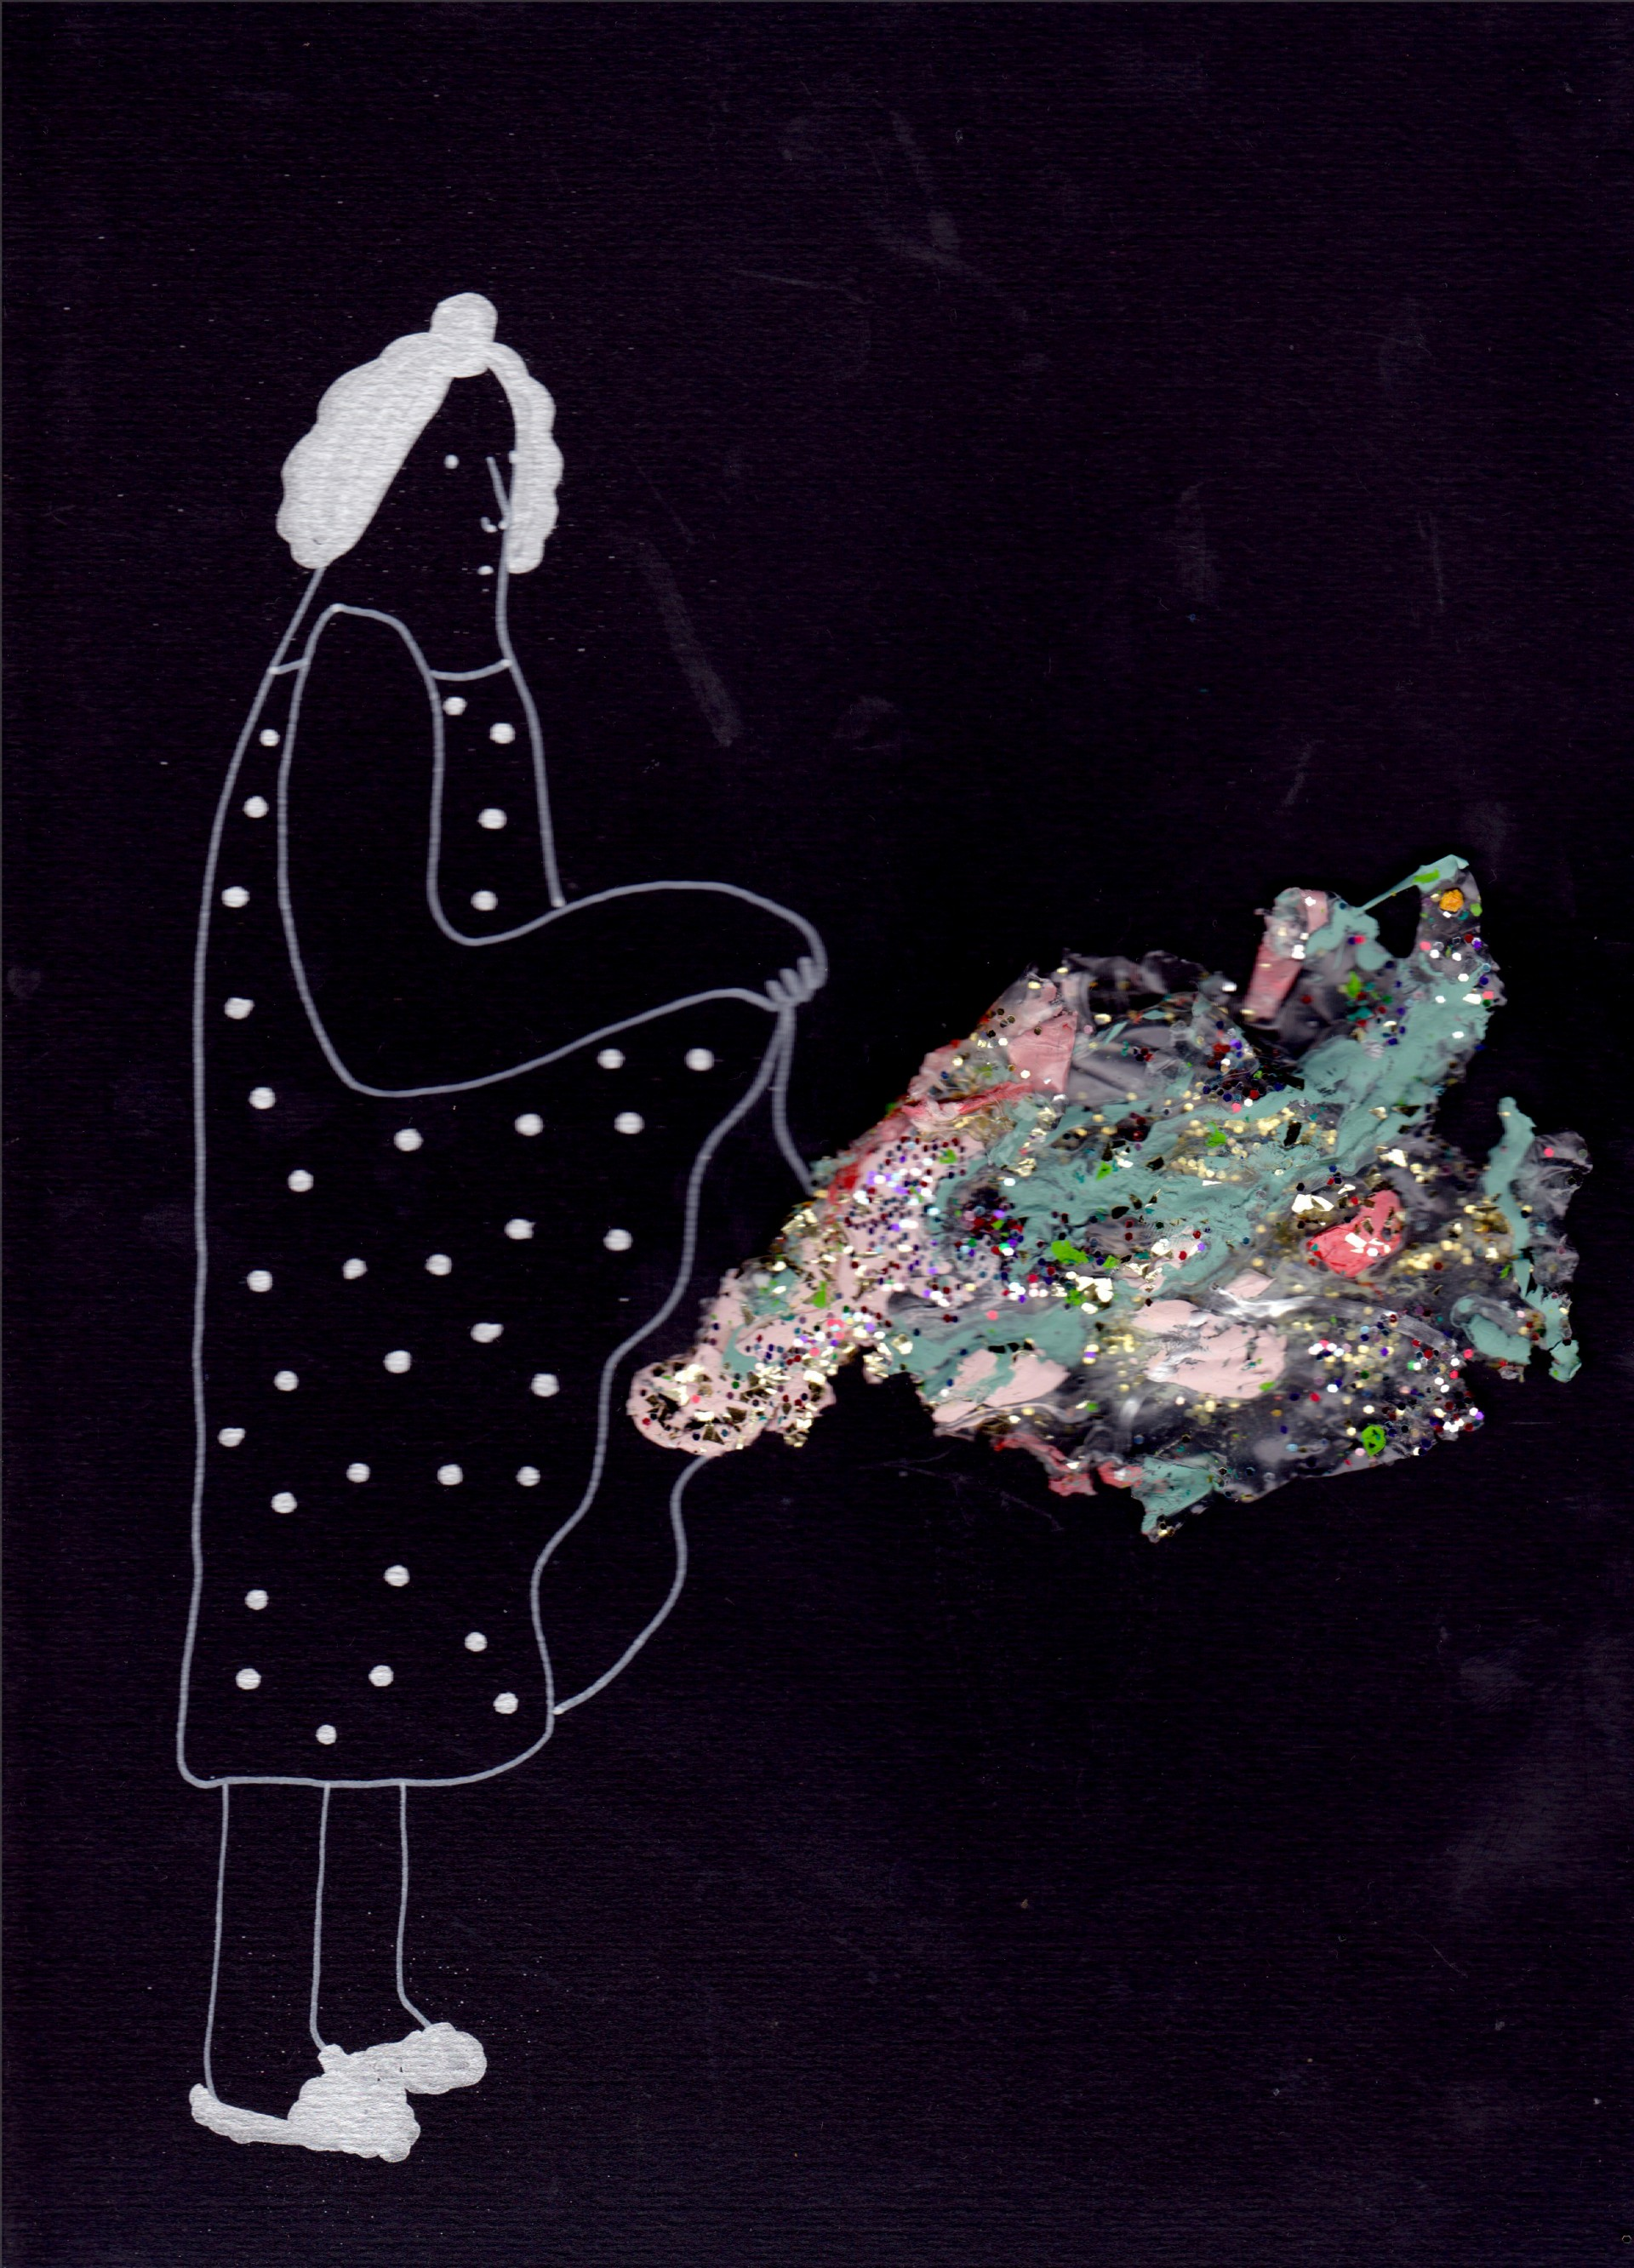 Woman wearing polka dot dress and fuzzy slippers holding up dress with glitter mass coming out from underneath. Lines drawn in silver paint pen. Black background.